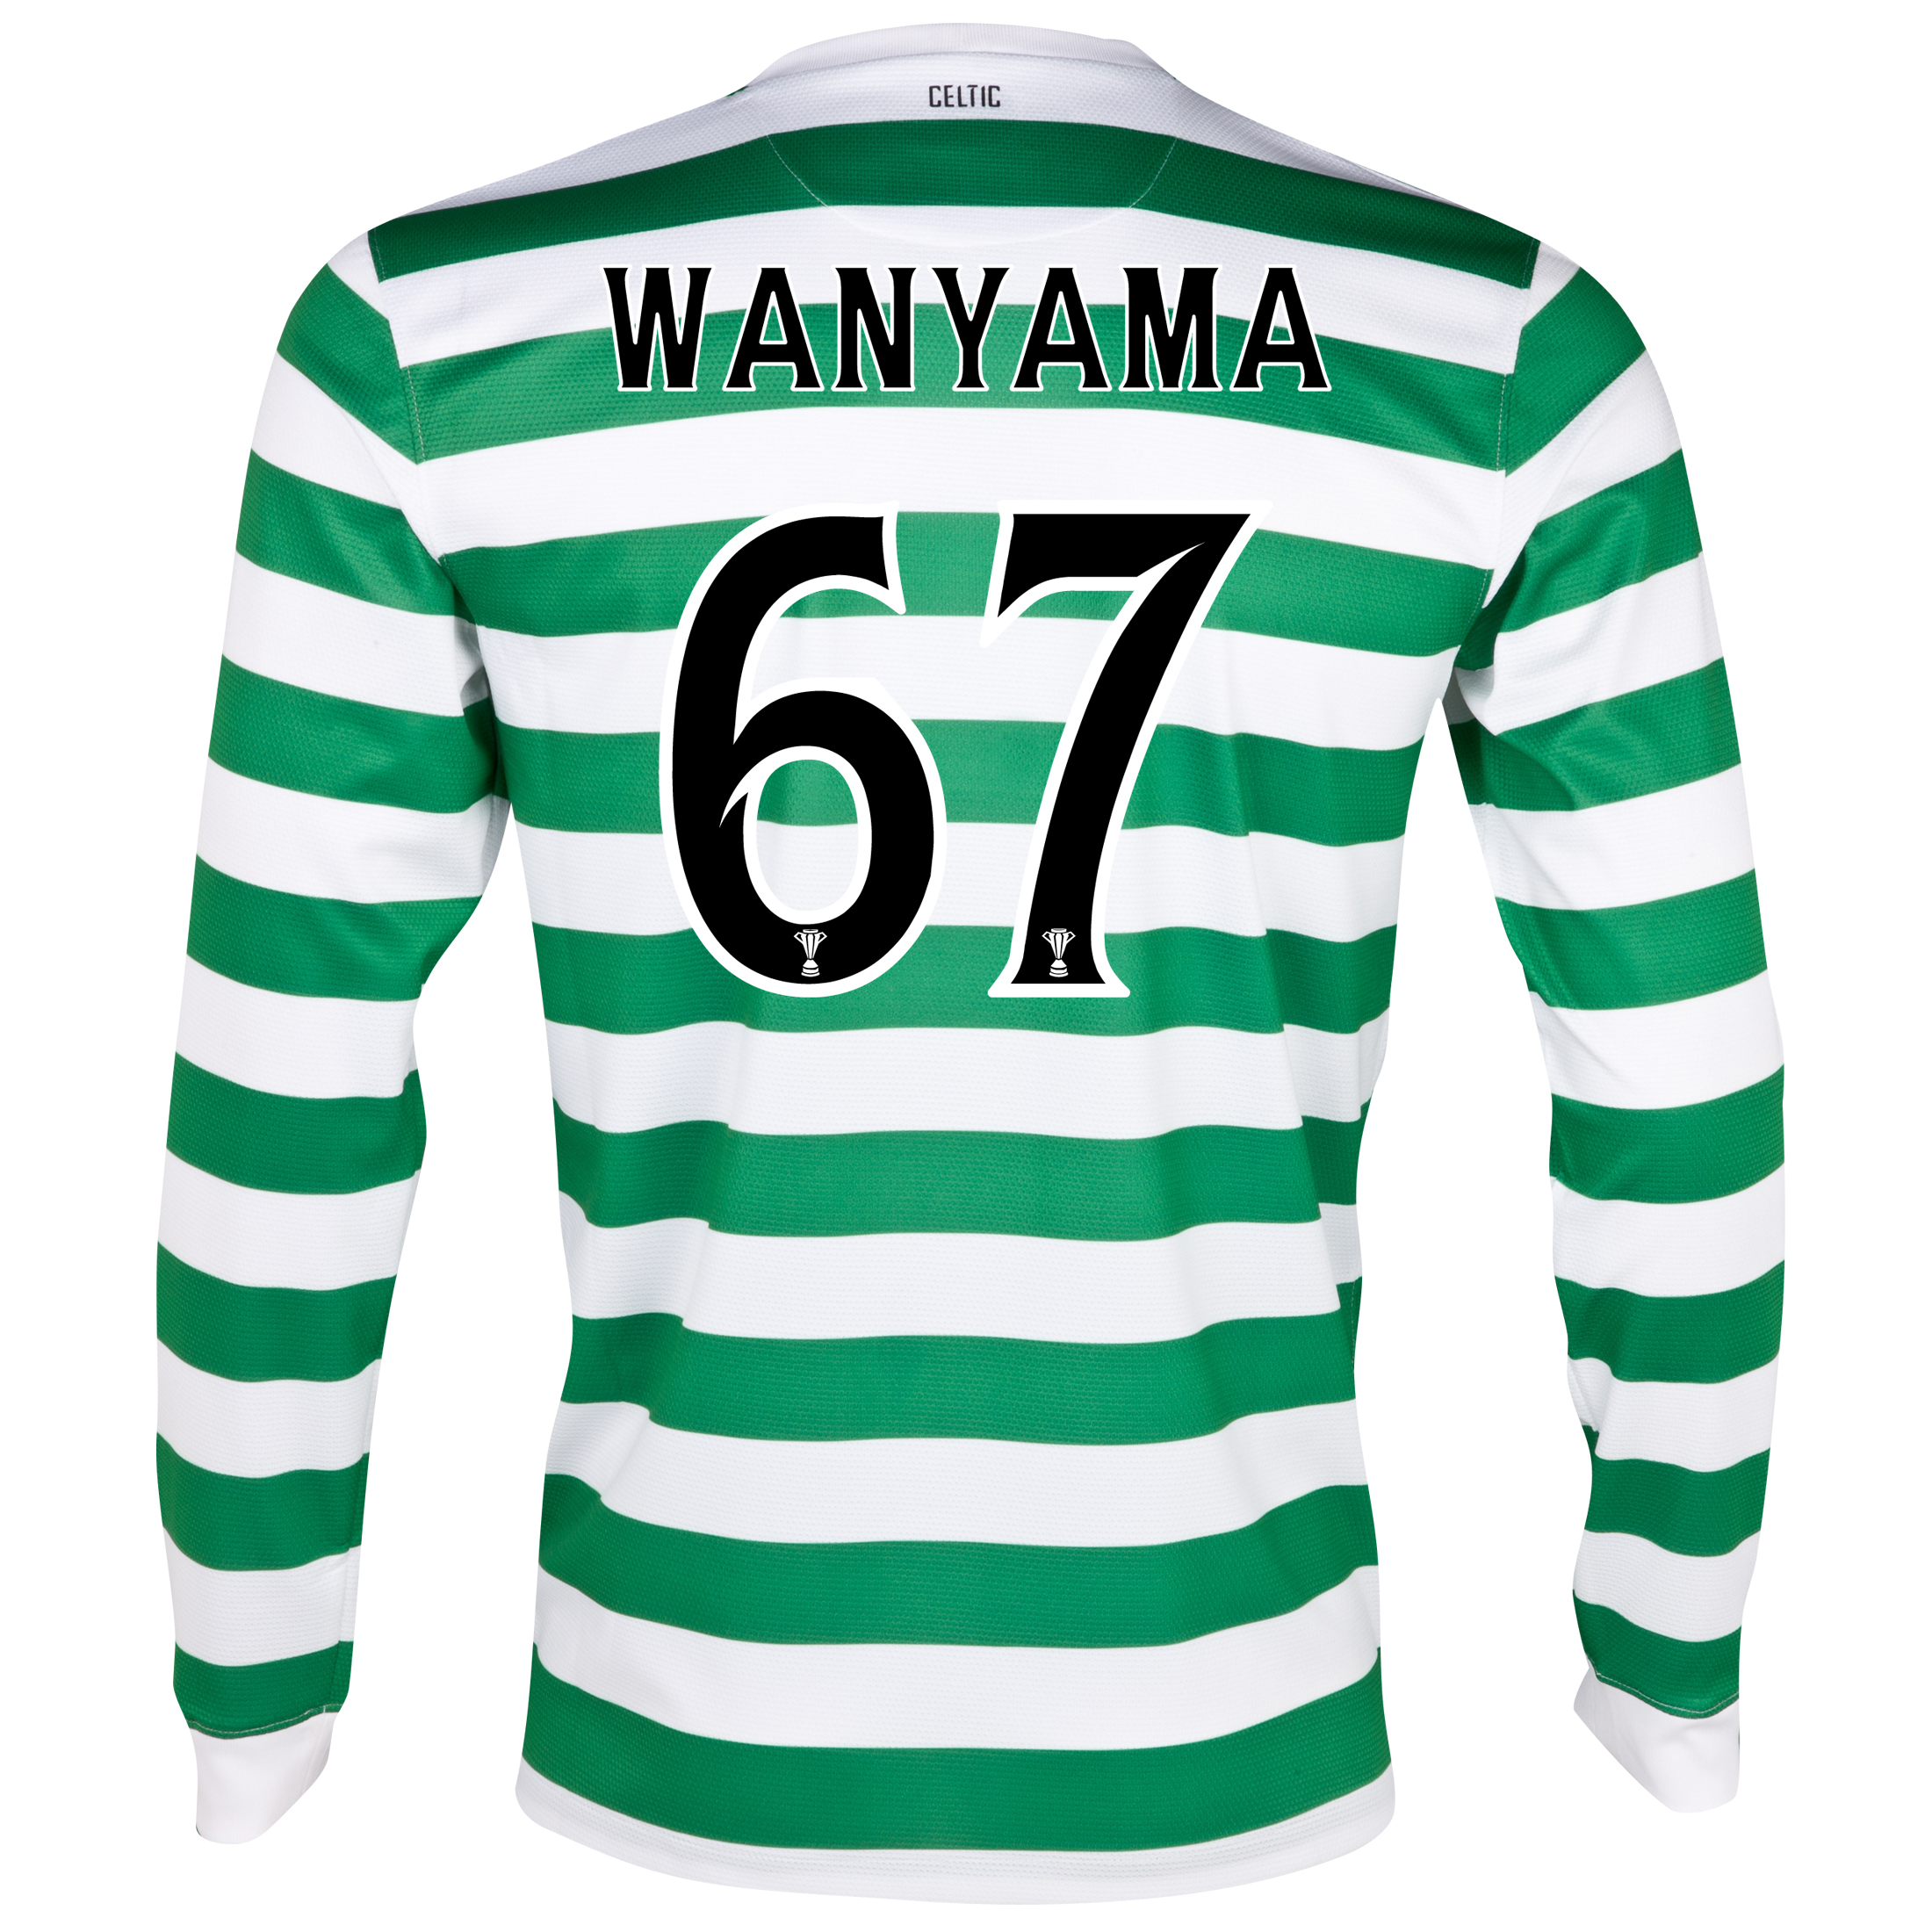 Celtic Home Shirt 2012/13 - Long Sleeved with Wanyama 67 printing